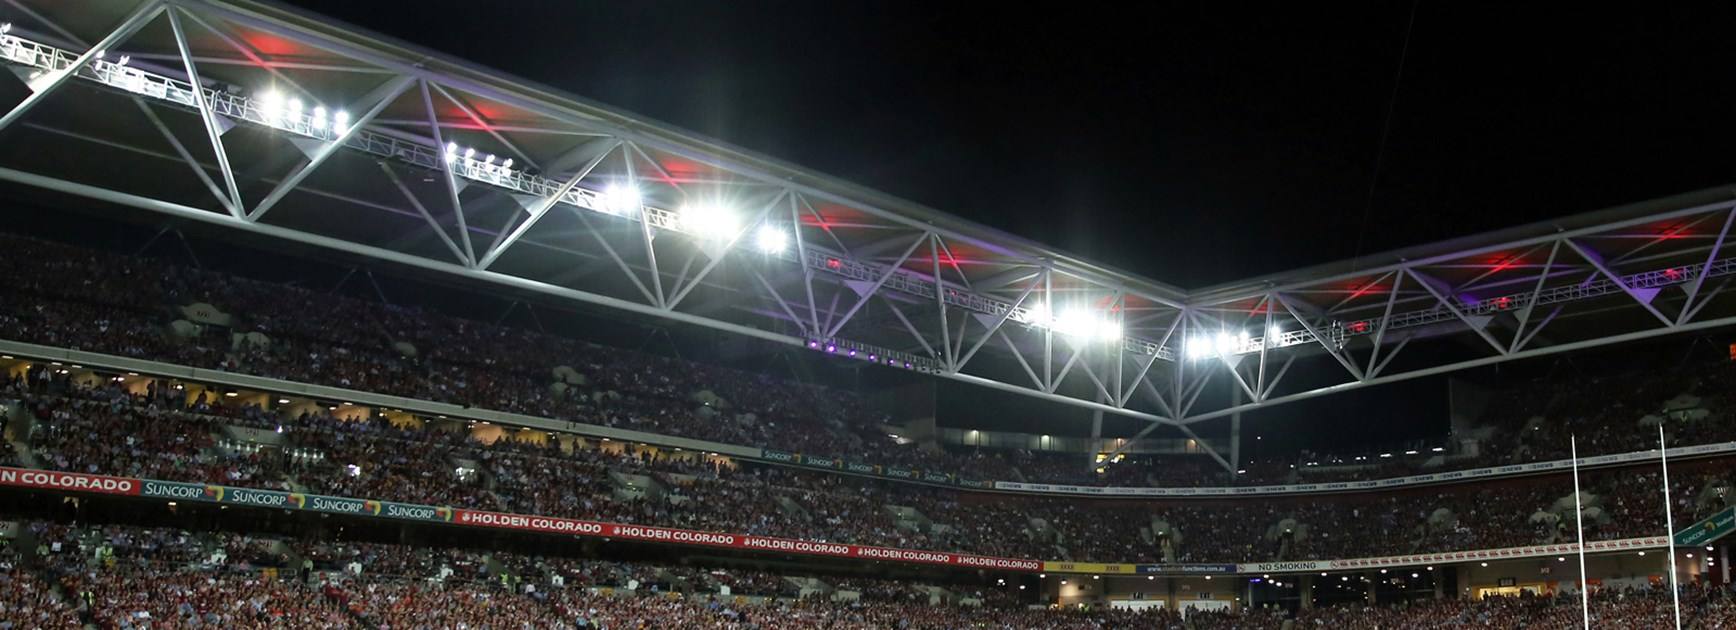 The 2015 Holden State of Origin decider will be played in front of a full house at Suncorp Stadium.